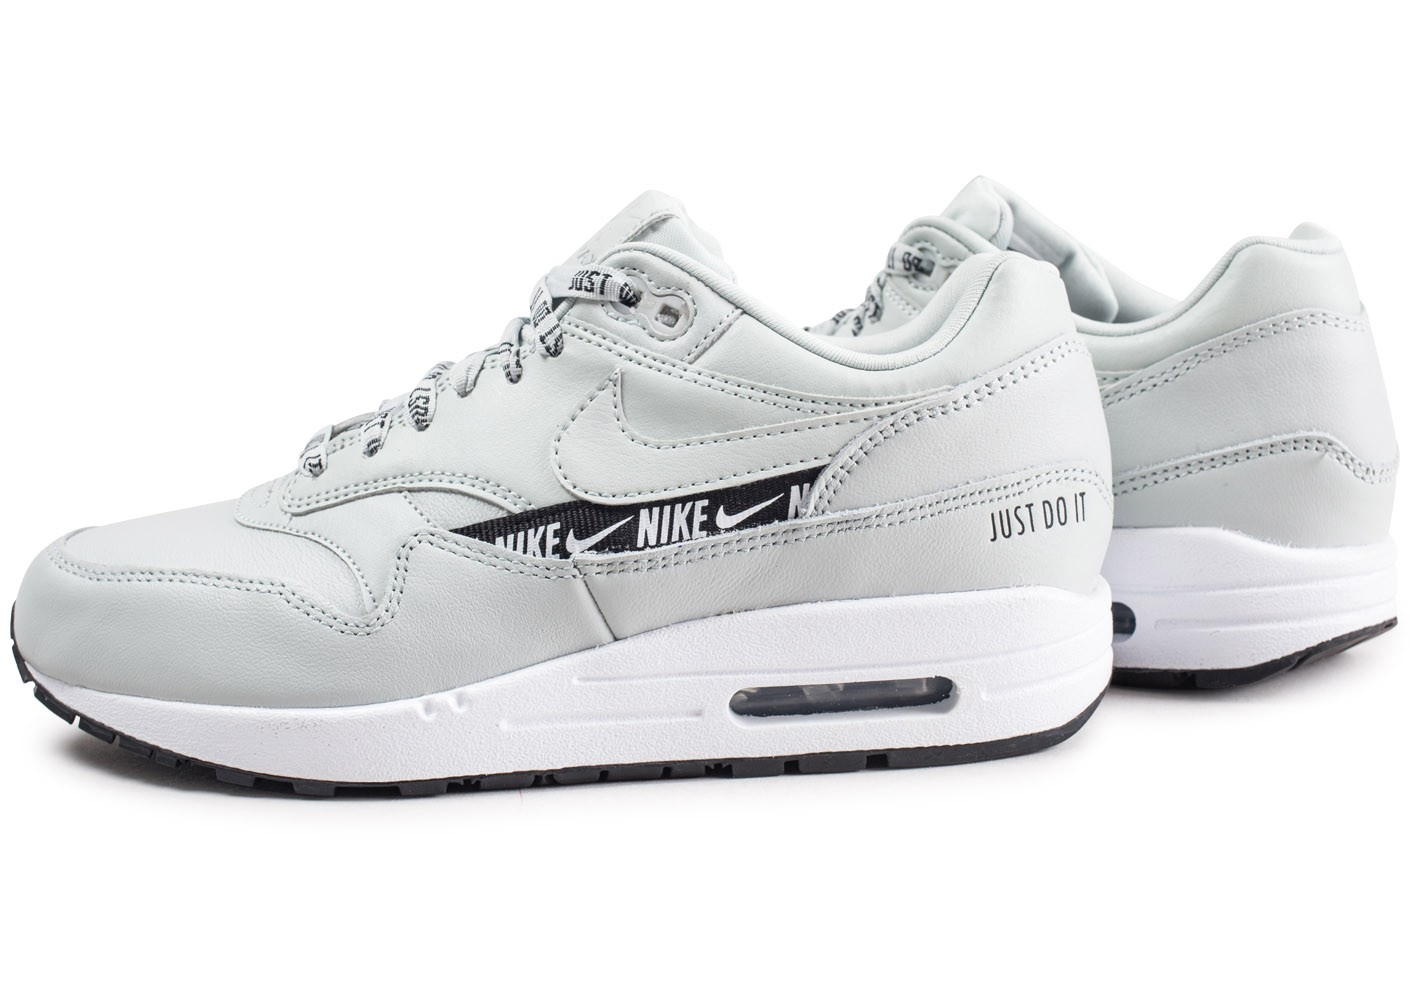 Nike Les Max Toutes 1 Argent Femme Overbranded Chaussures Air Se TulPkOXZiw